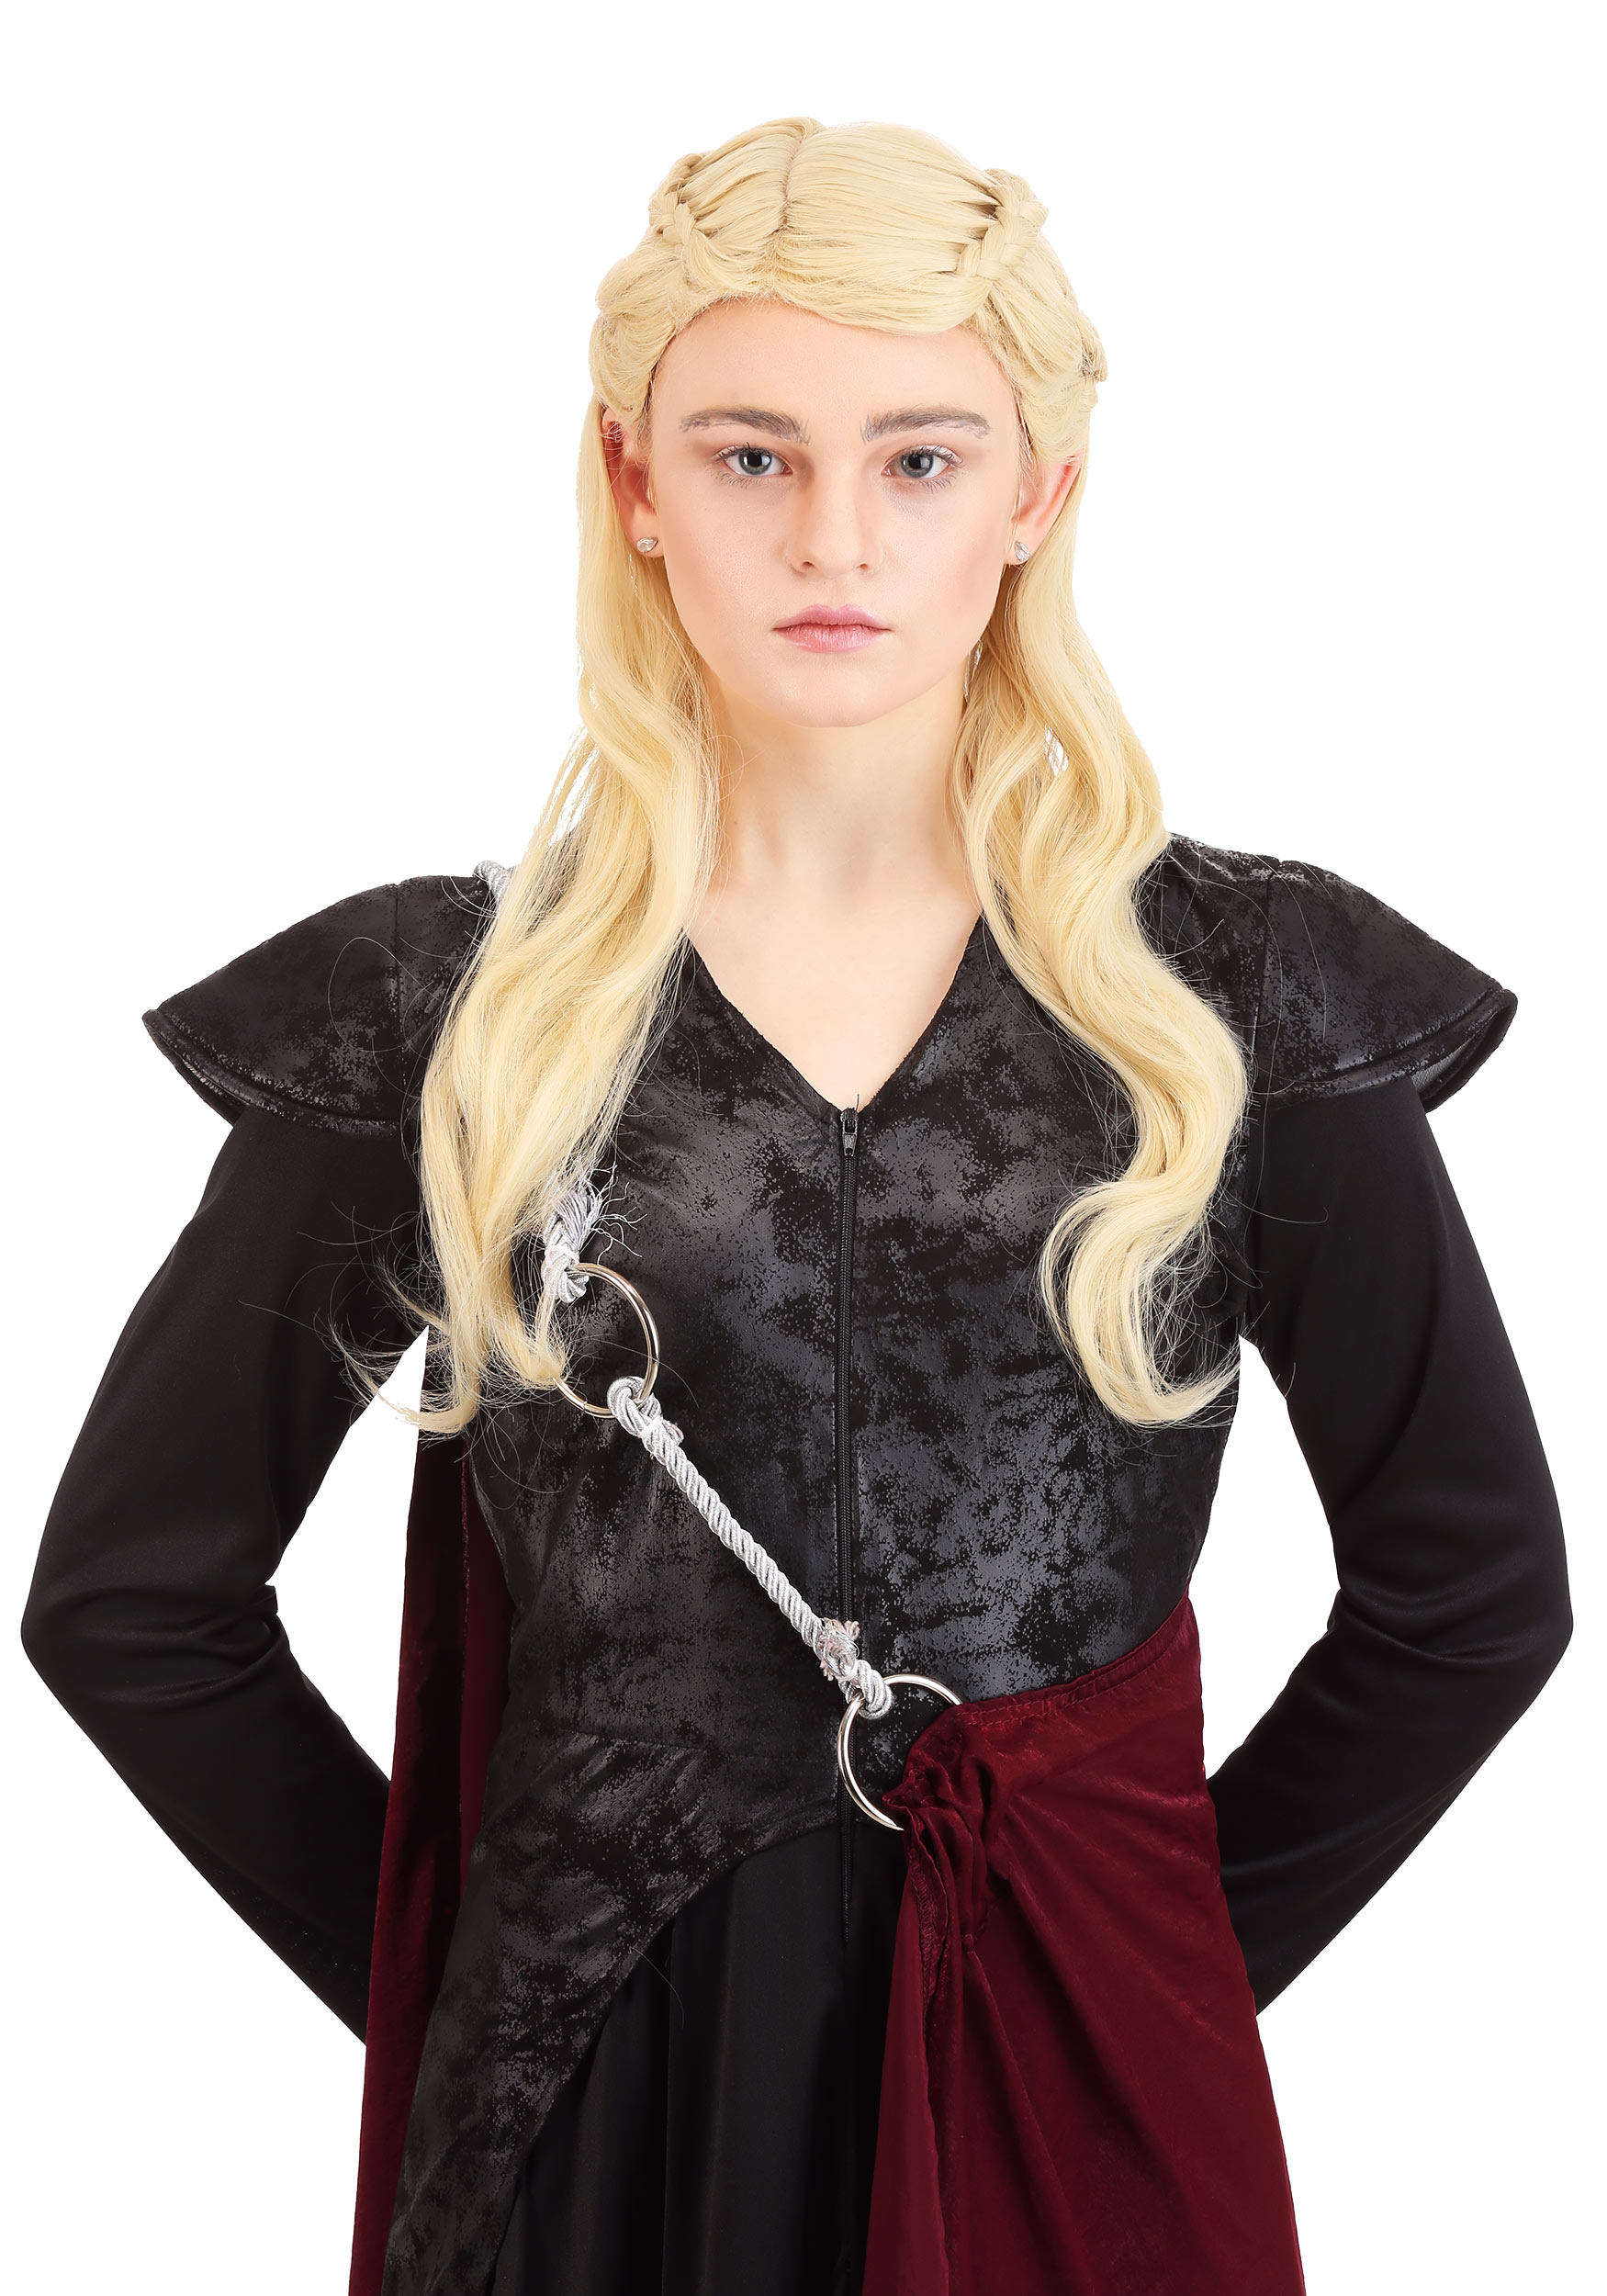 Daenerys Makeup and Hair Front View